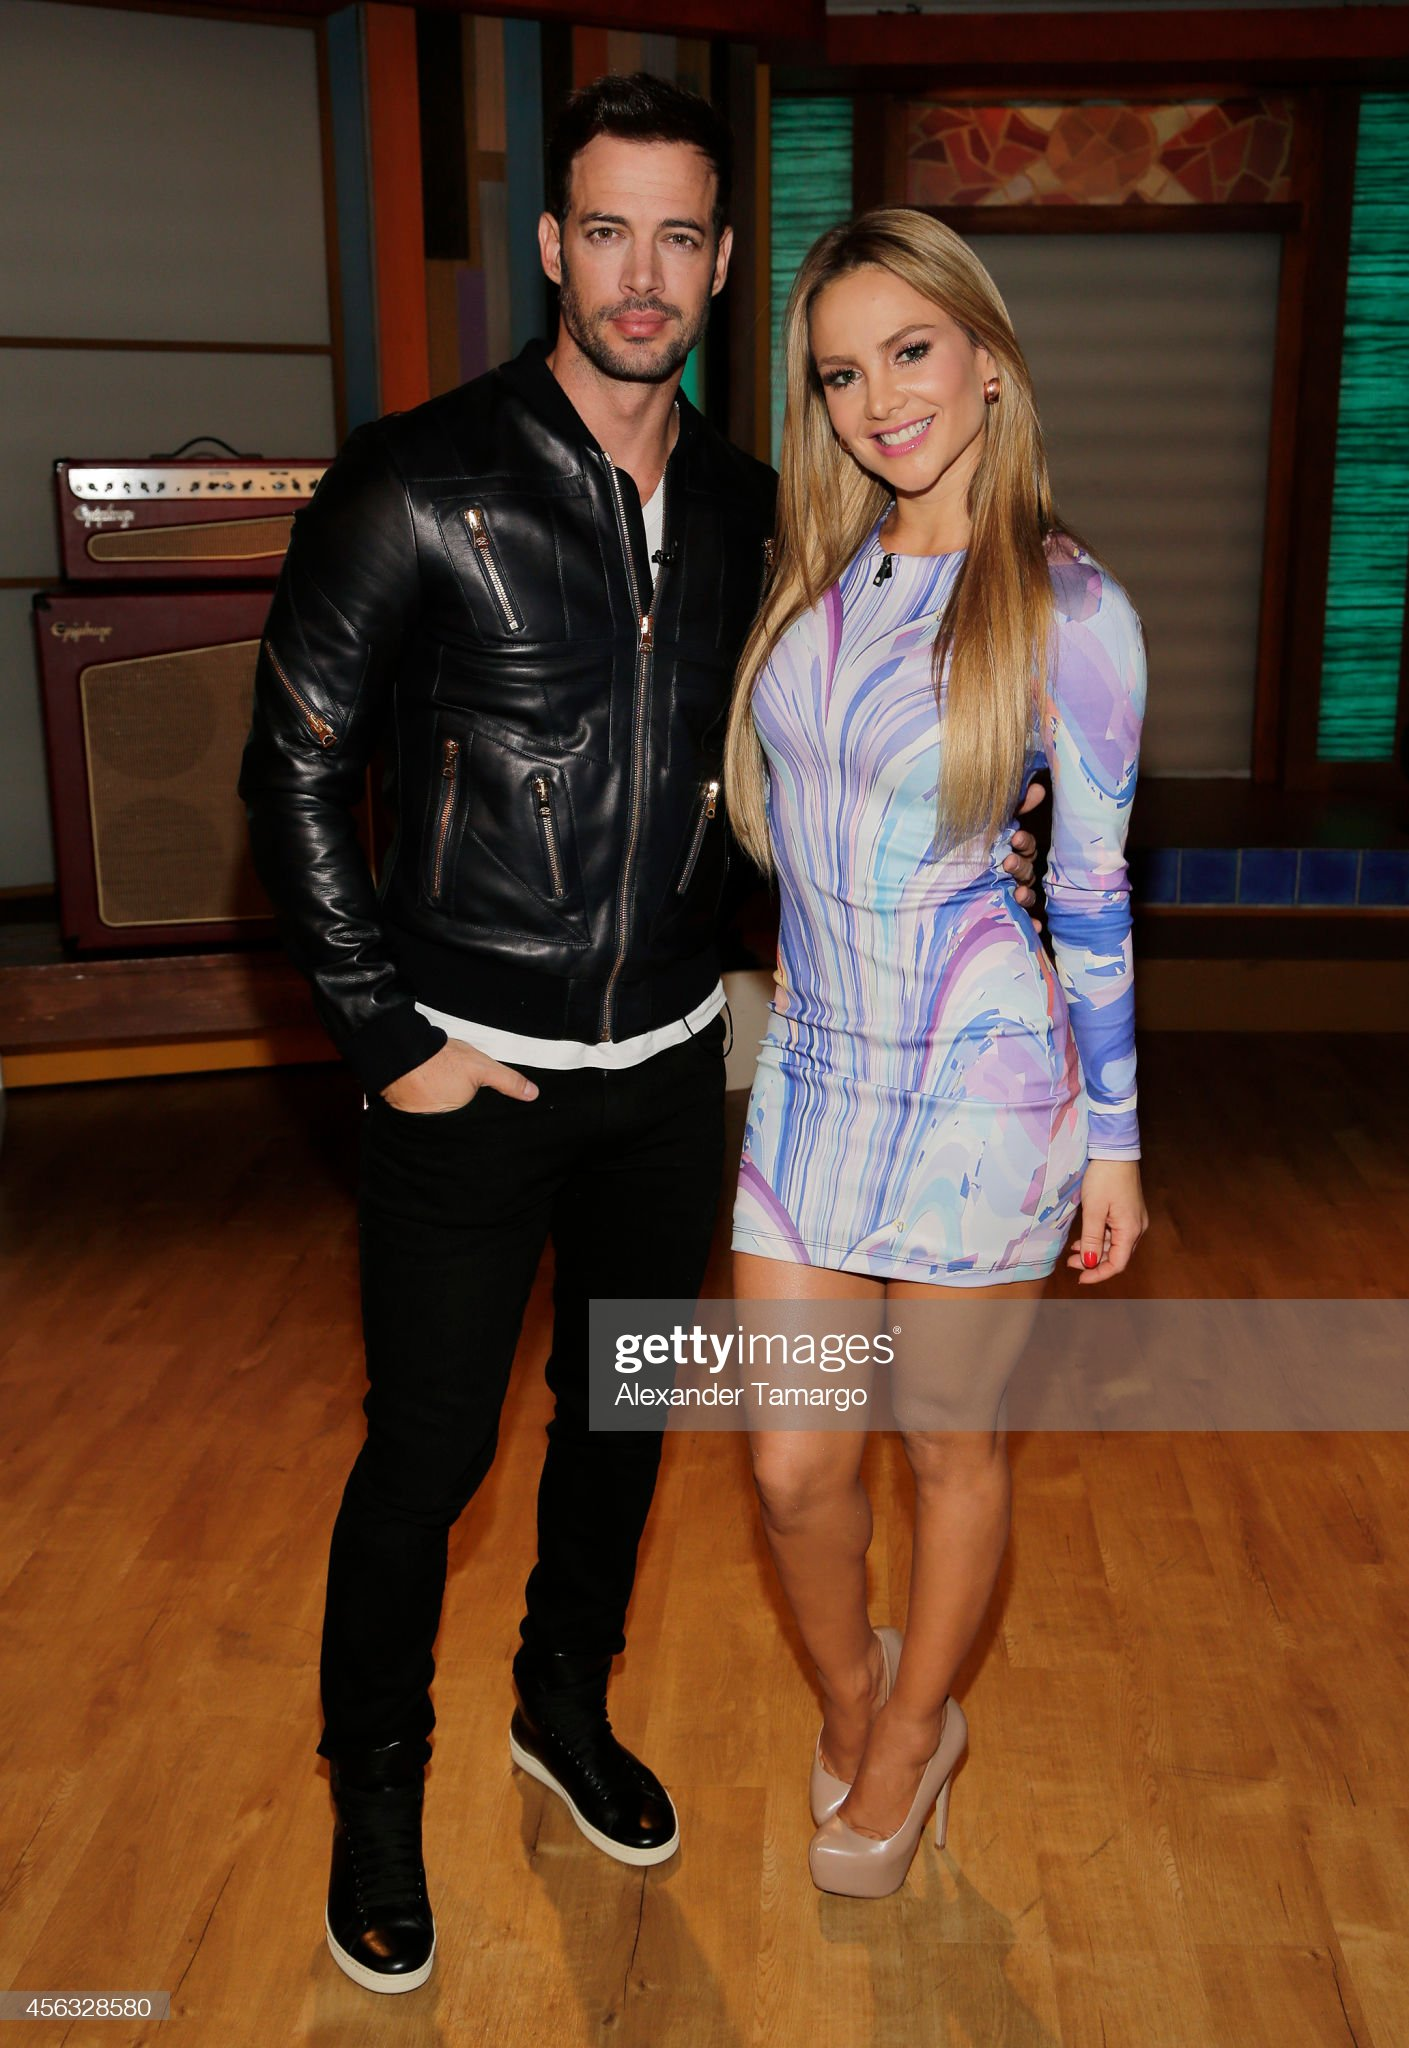 ¿Cuánto mide Ximena Córdoba? - Altura - Real height William-levy-and-ximena-cordoba-are-seen-on-the-set-of-despierta-to-picture-id456328580?s=2048x2048